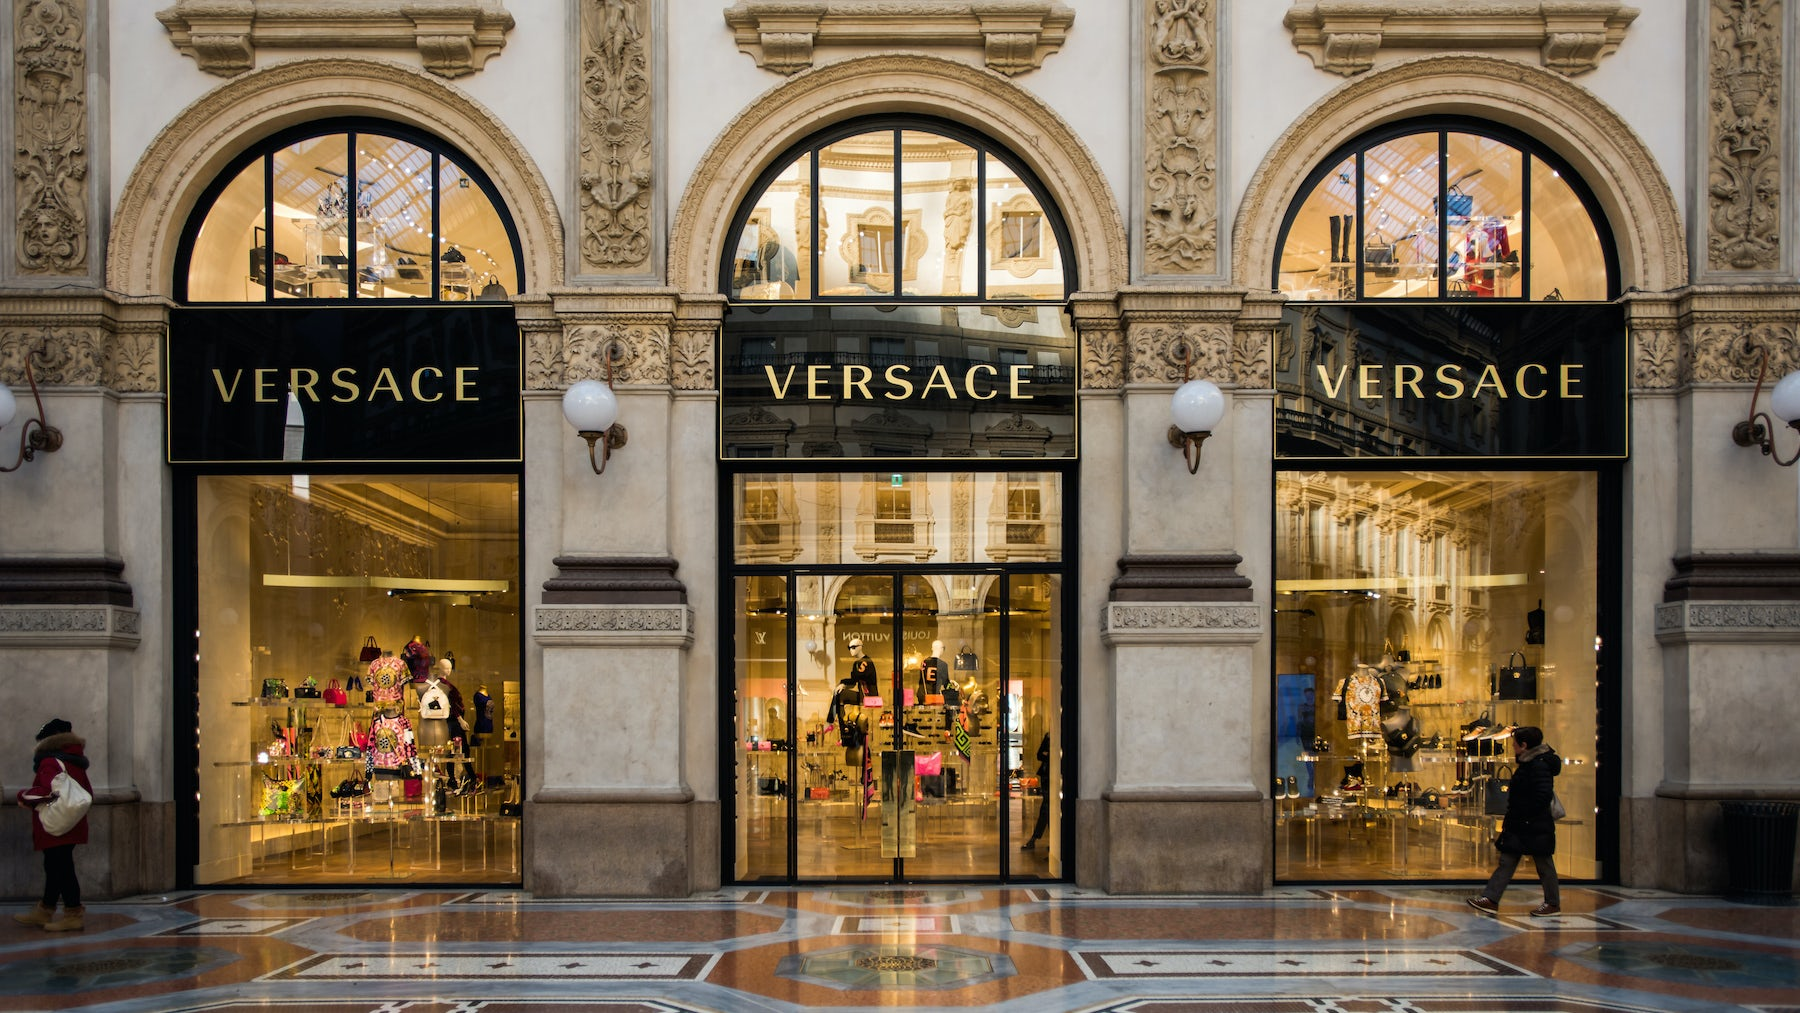 Article cover of Versace Takeover Will Bring Jobs to Italy